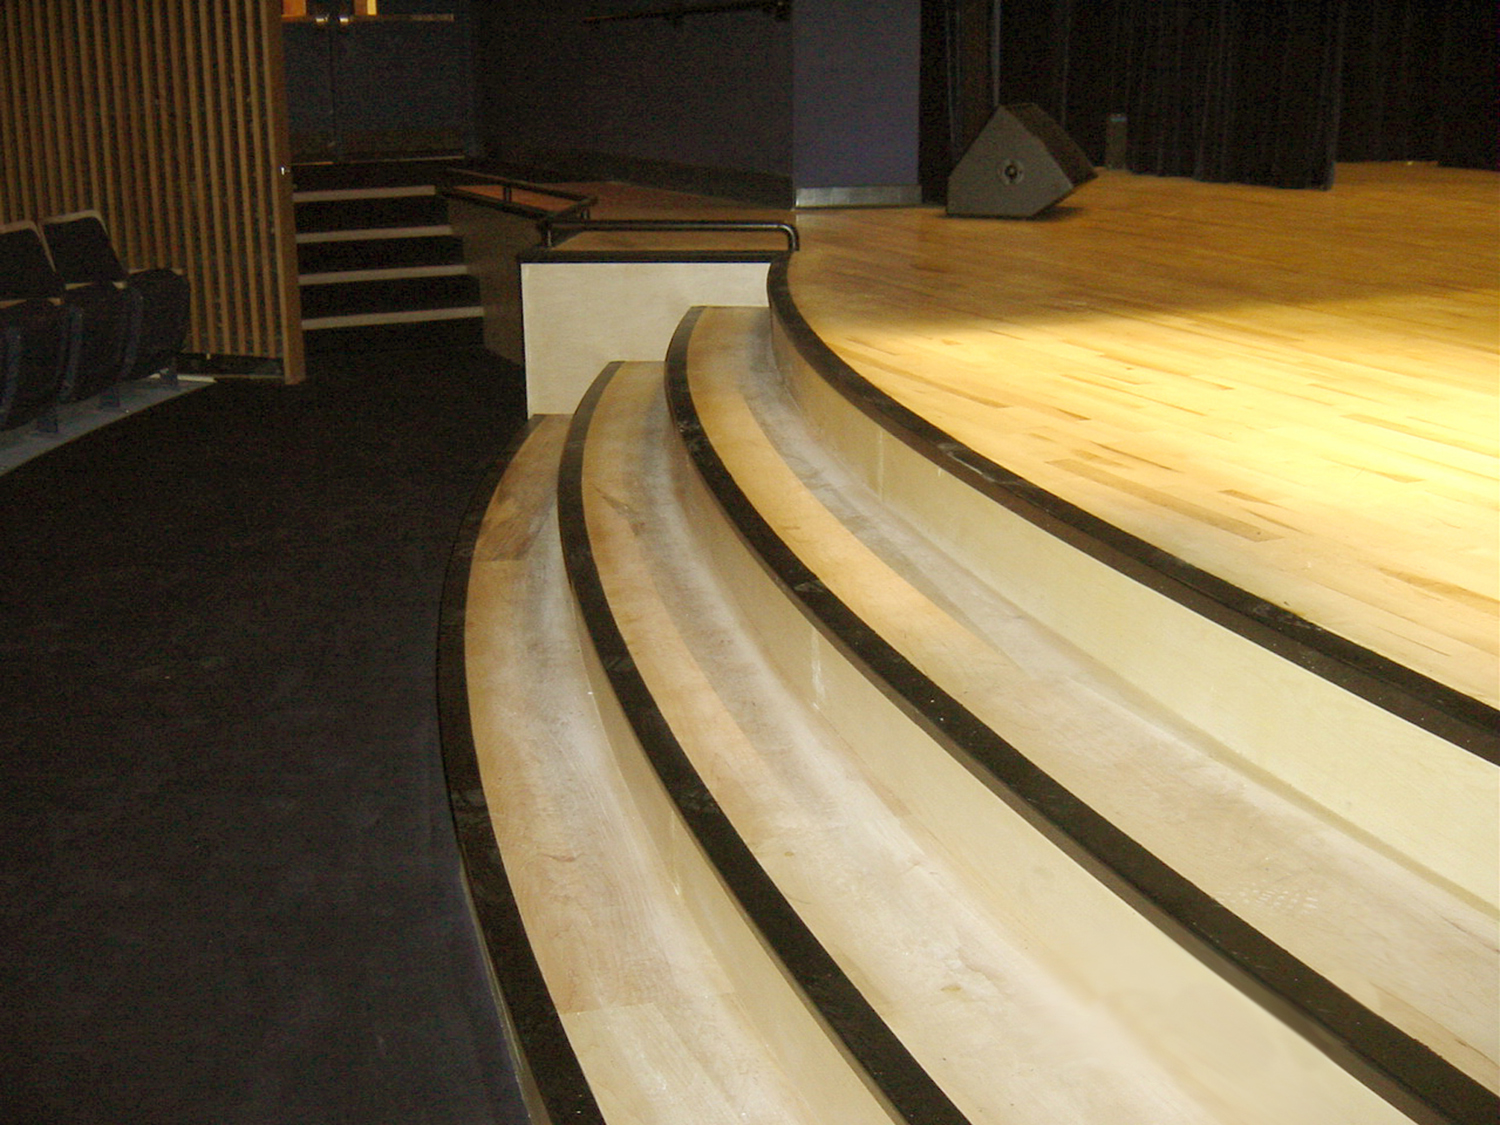 View of steps at stage apron